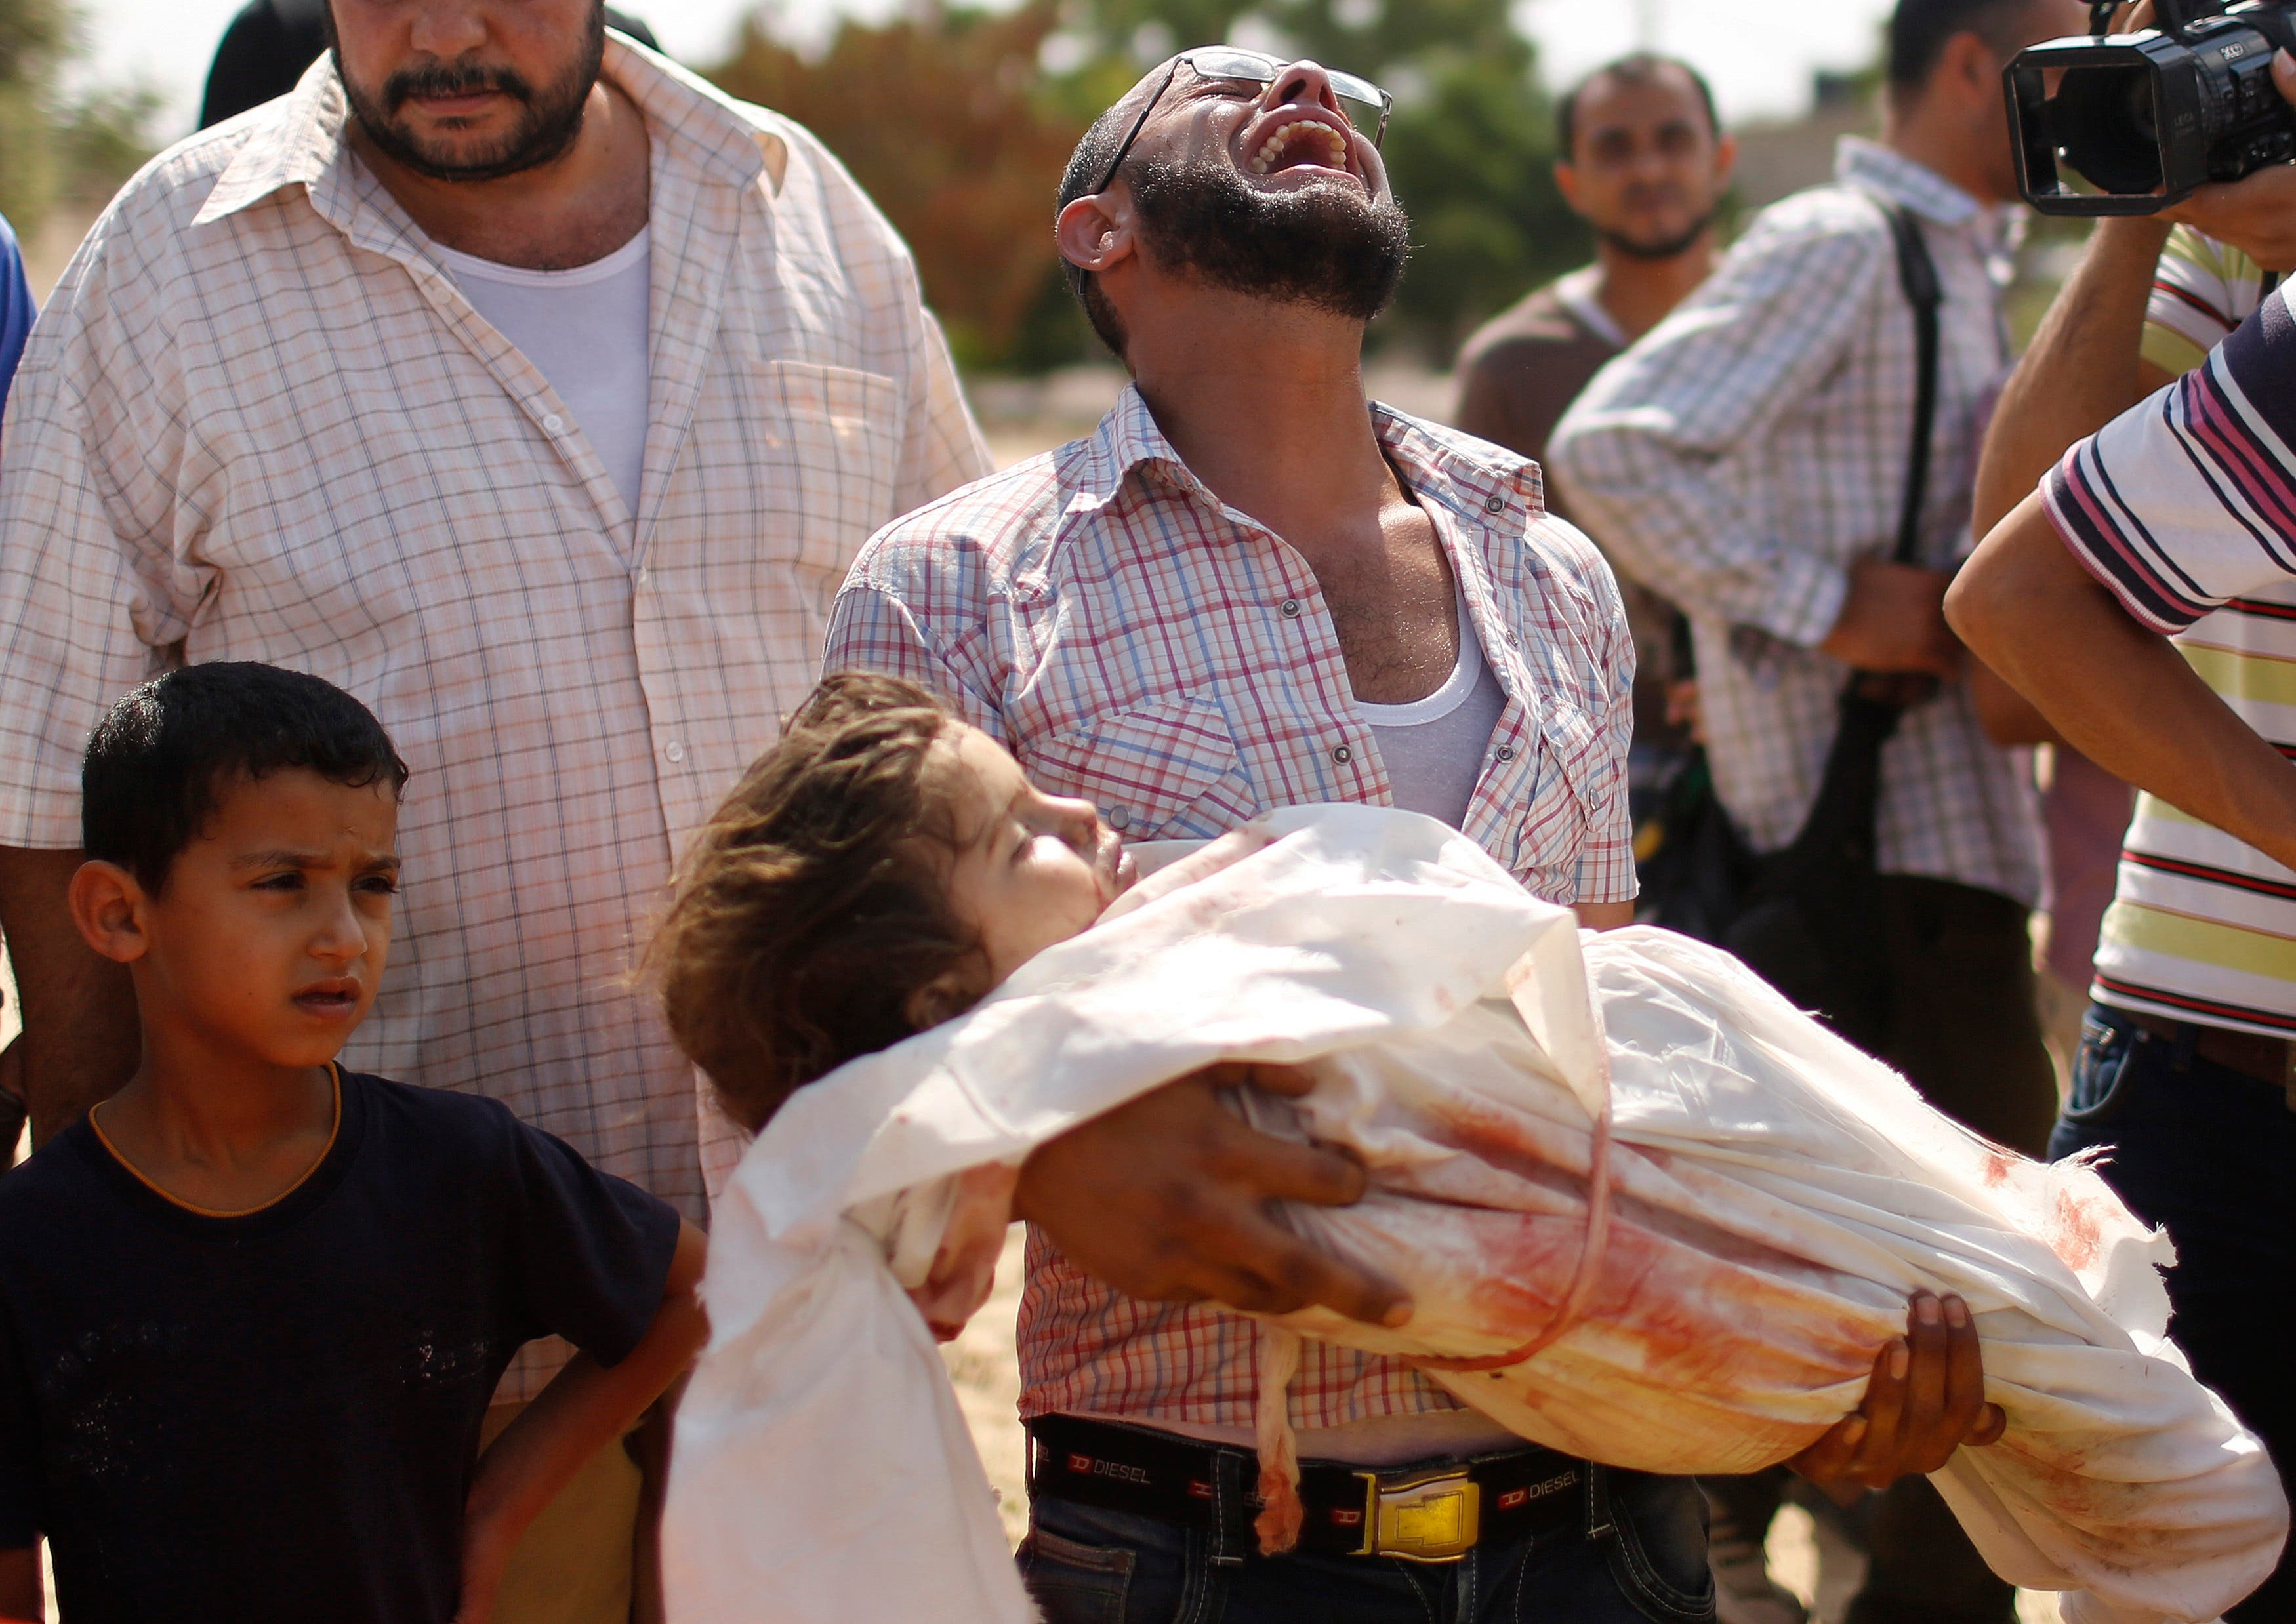 relative cries as he carries the body of three-year-old Palestinian girl Haniyeh Abu Jarad, who medics said was killed along with her father and other six members from the same family by an Israeli tank shell, during their funeral in Beit Lahiya in the northern Gaza Strip July 19, 2014. (Reuters)